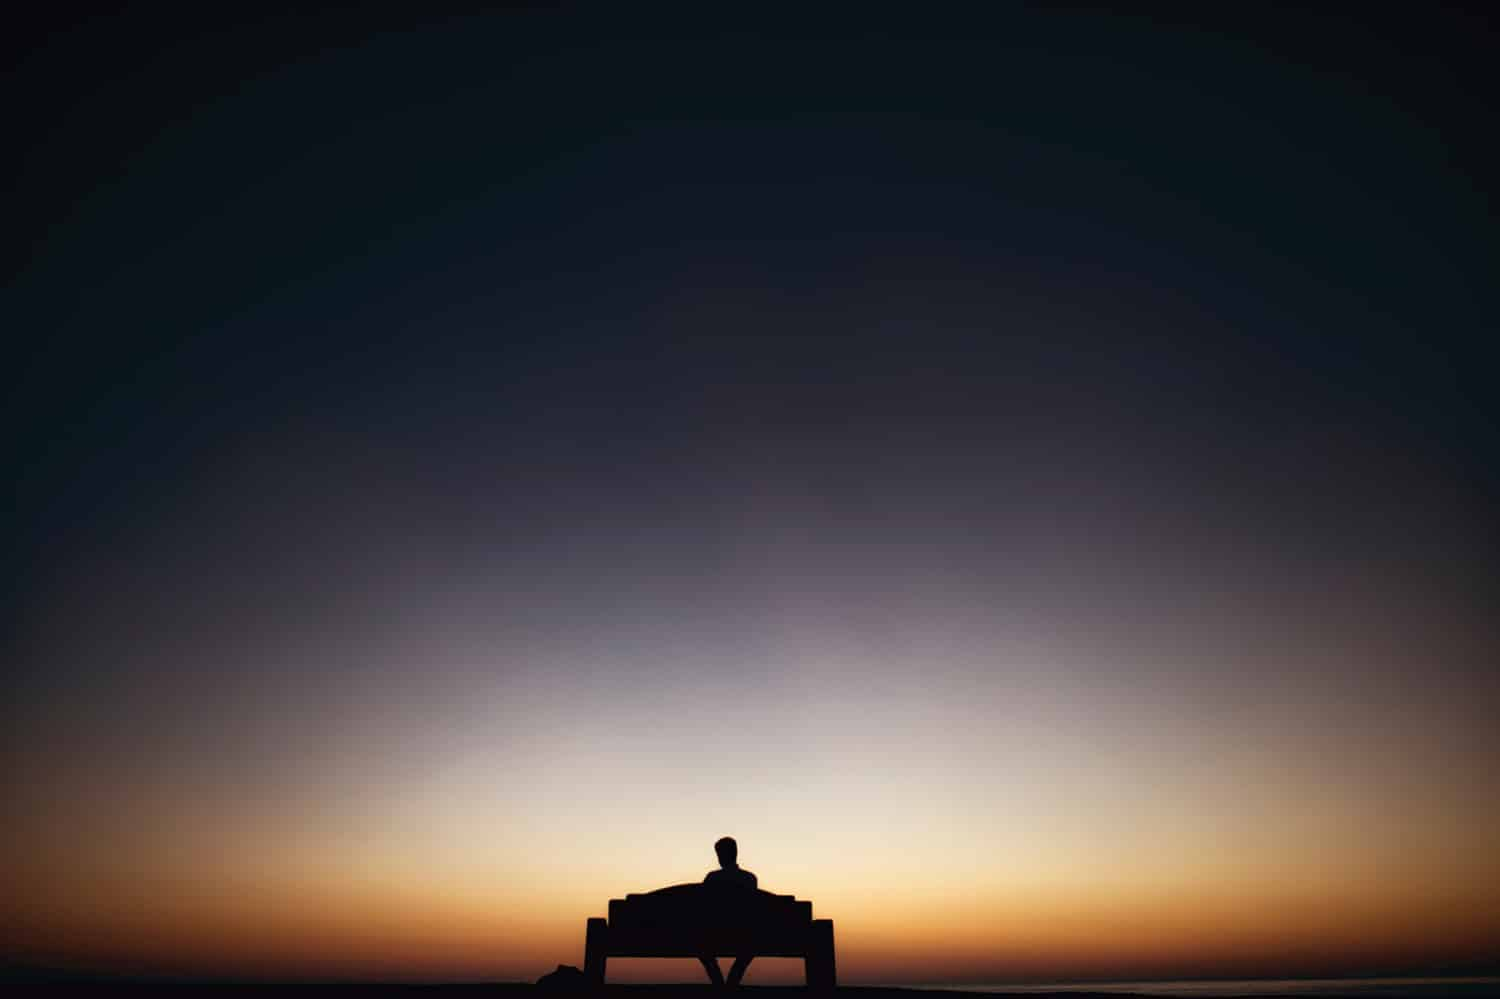 Silence is golden: Why peace and quiet is good for your health - Our Place